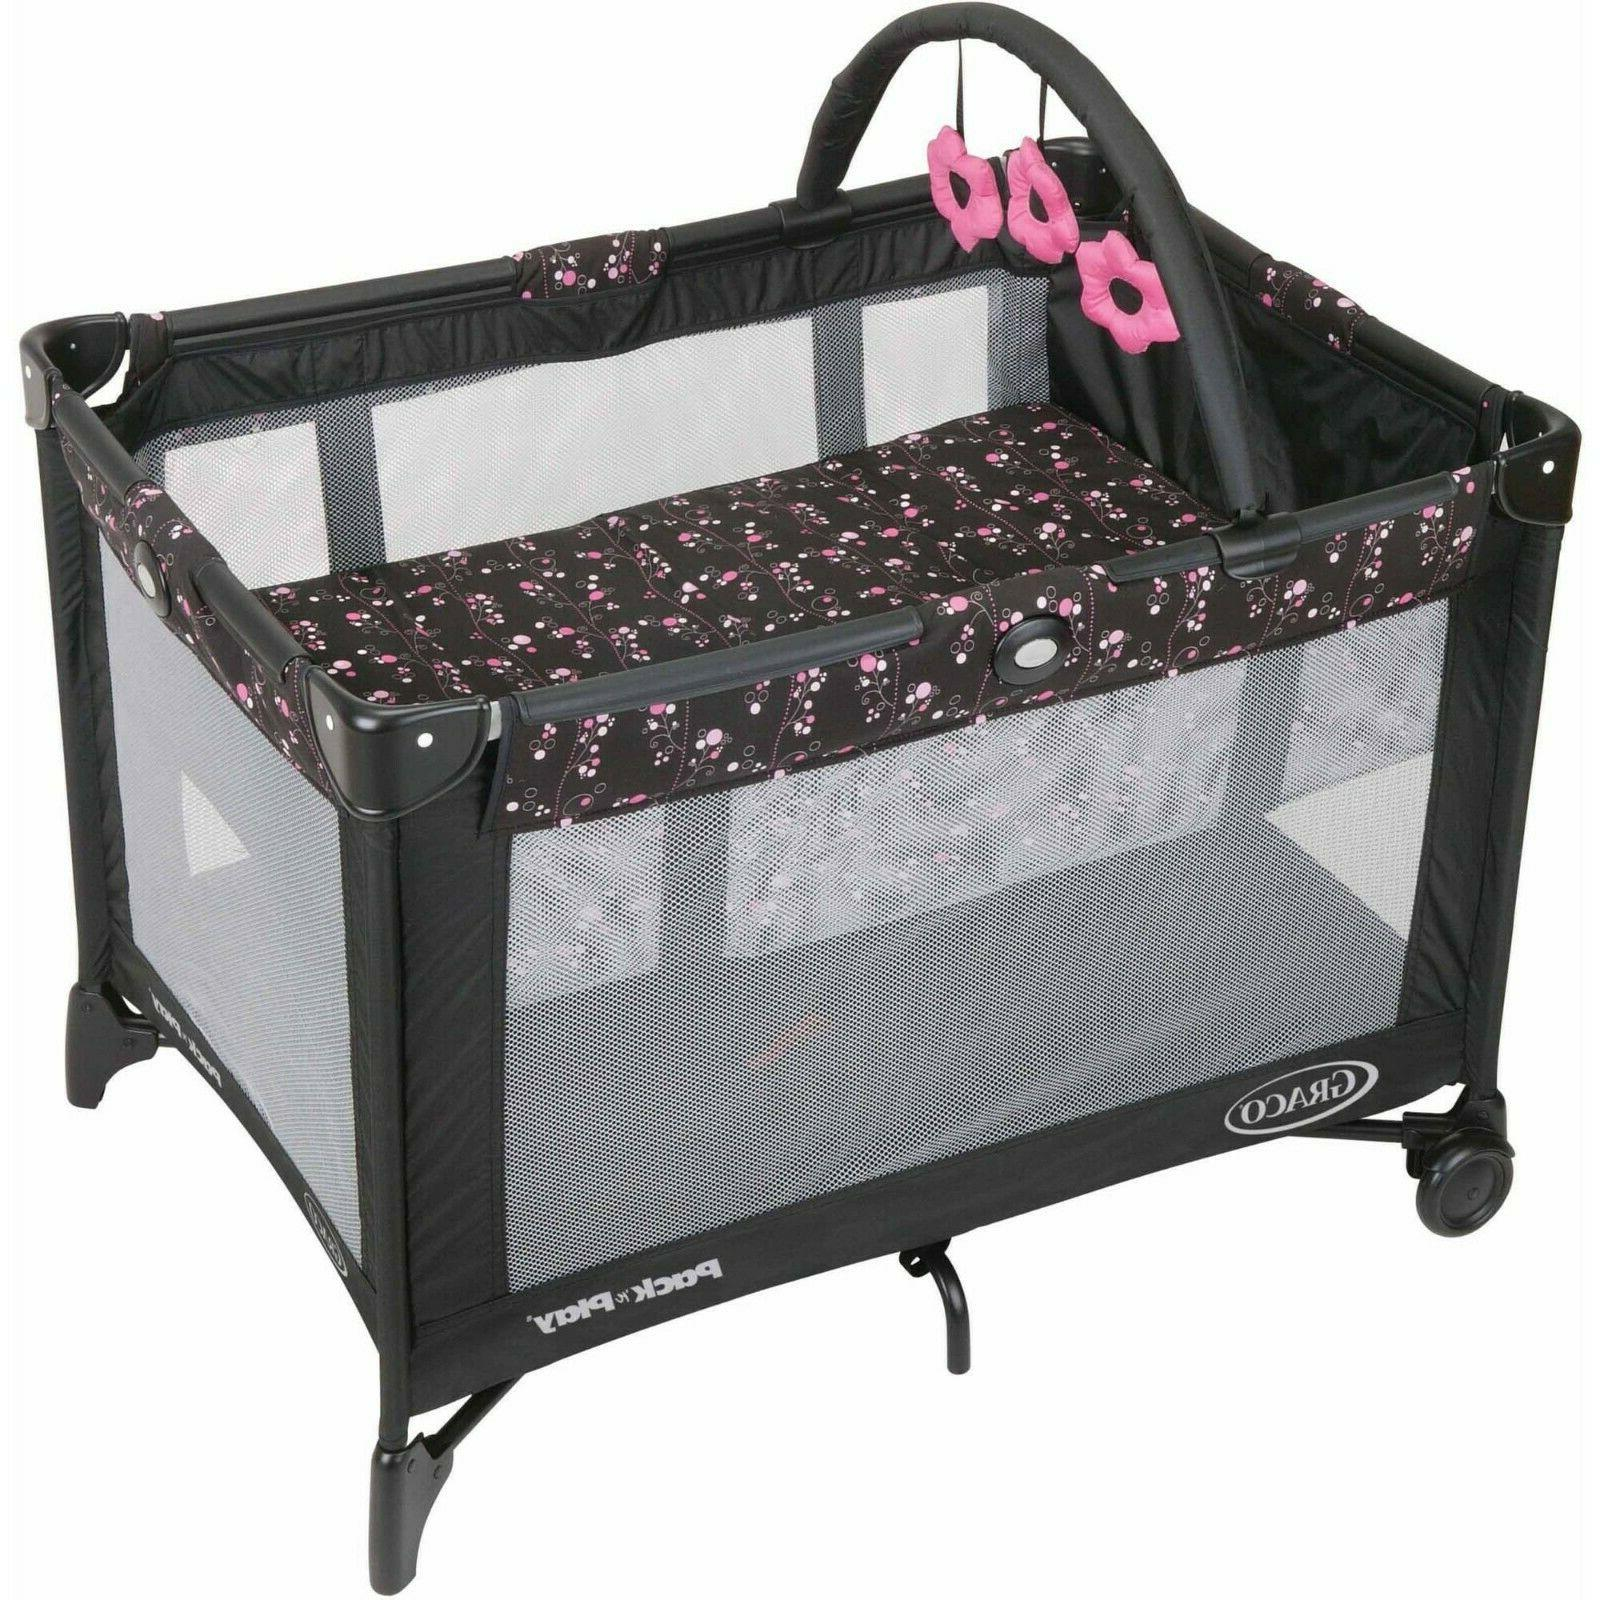 Graco On with Bassinet